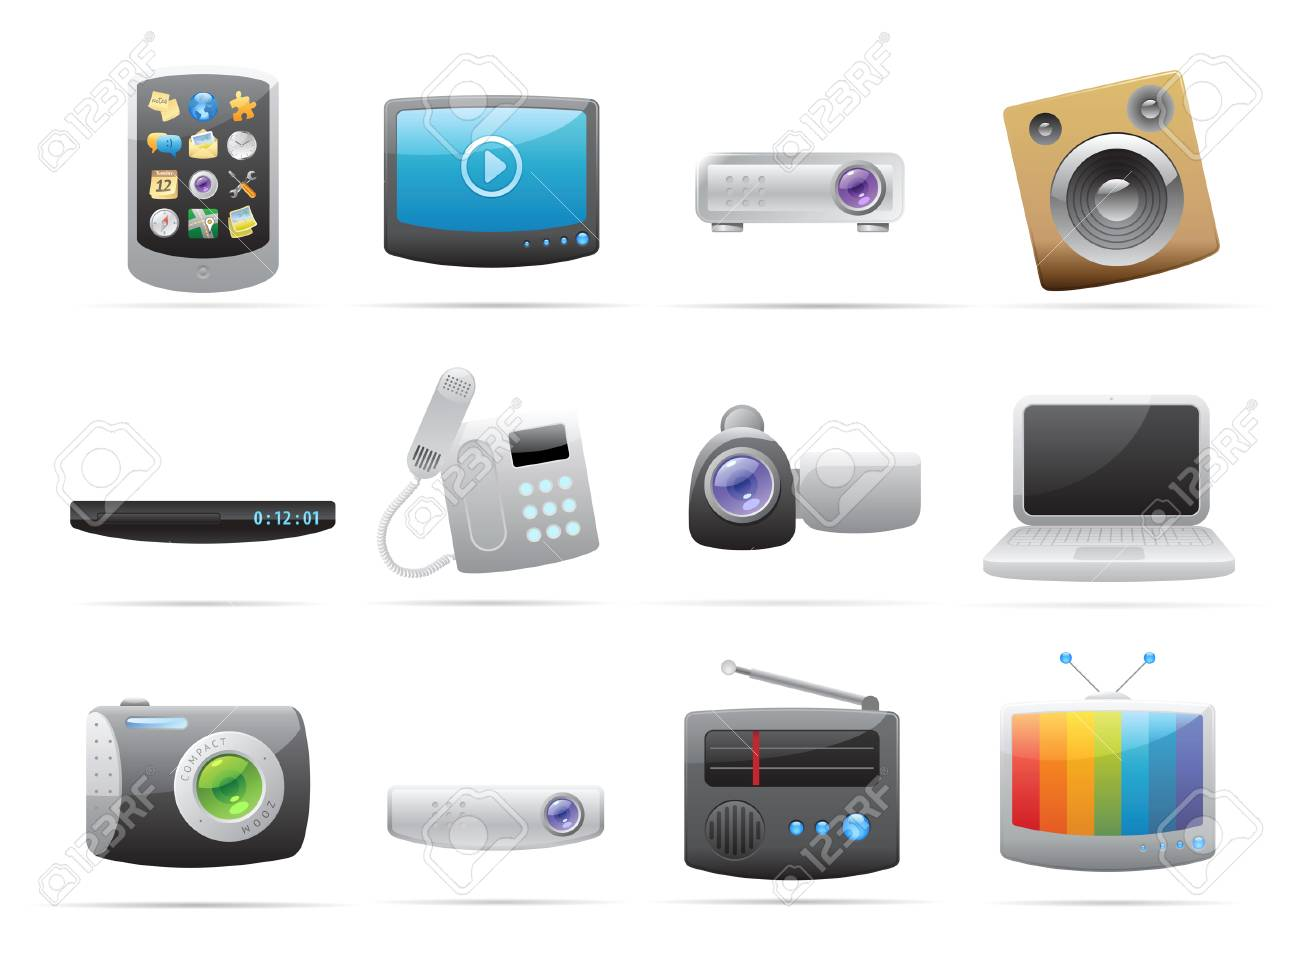 Icons for devices. Vector illustration. Stock Vector - 8622079